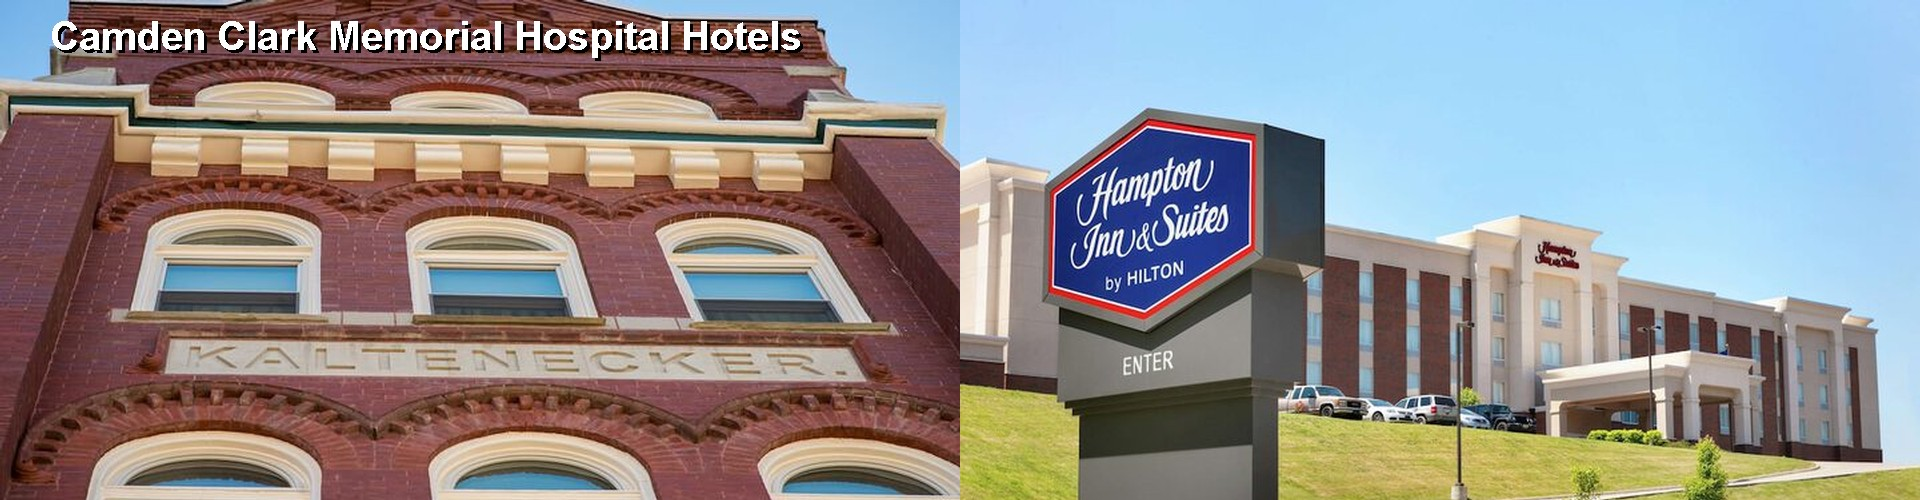 5 Best Hotels near Camden Clark Memorial Hospital